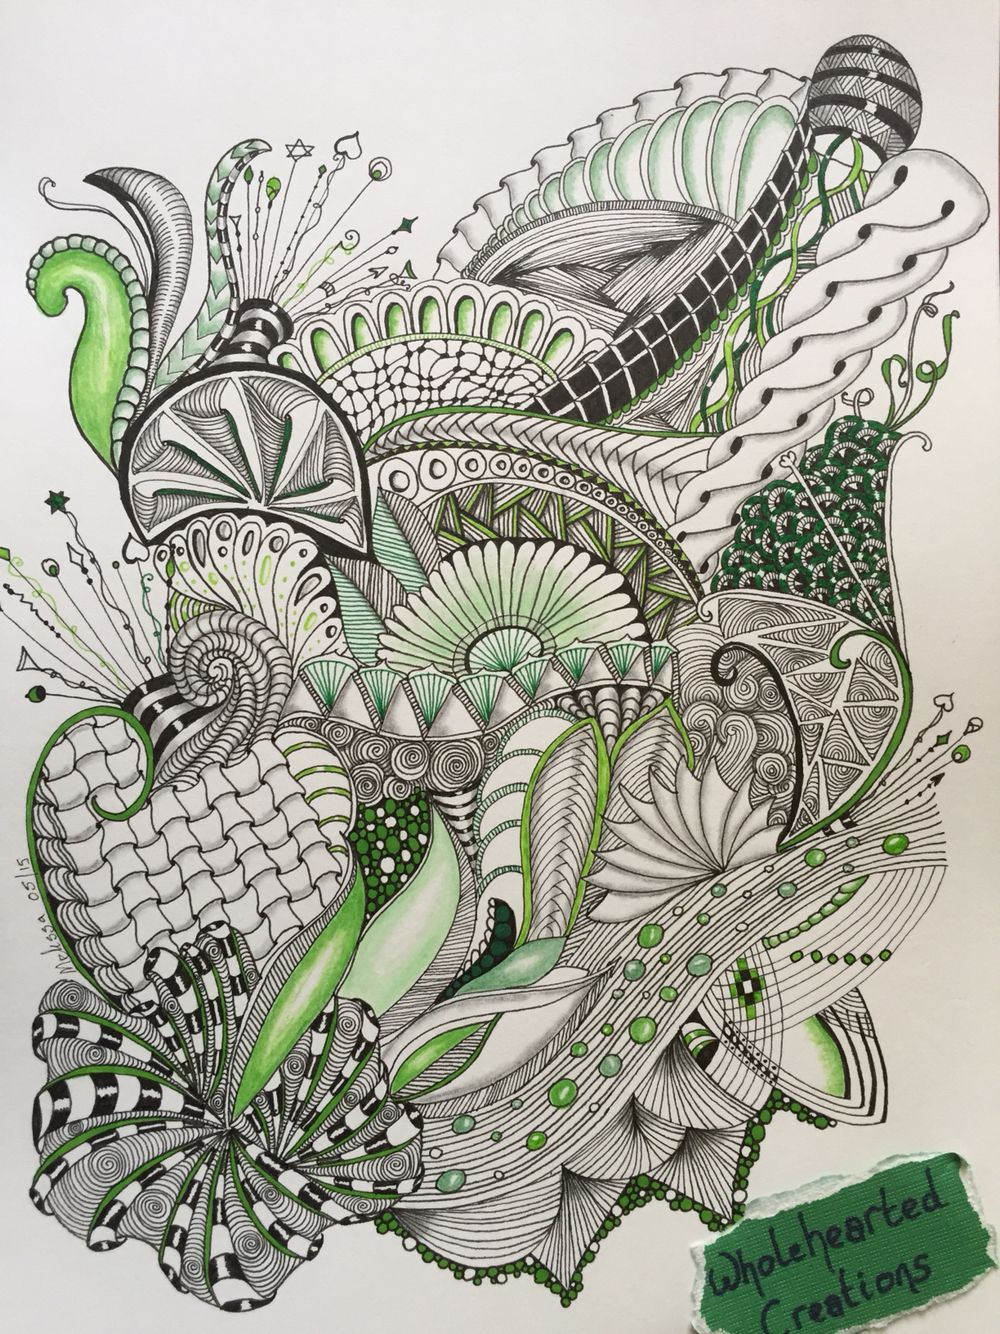 Zen doodle colour - Zia Zentangle Zendoodle Zenspiration Dangles Doodle Colour Green Aquafleur Cadent Funnls Intwine Shattuck Oringel Ribbons Flower